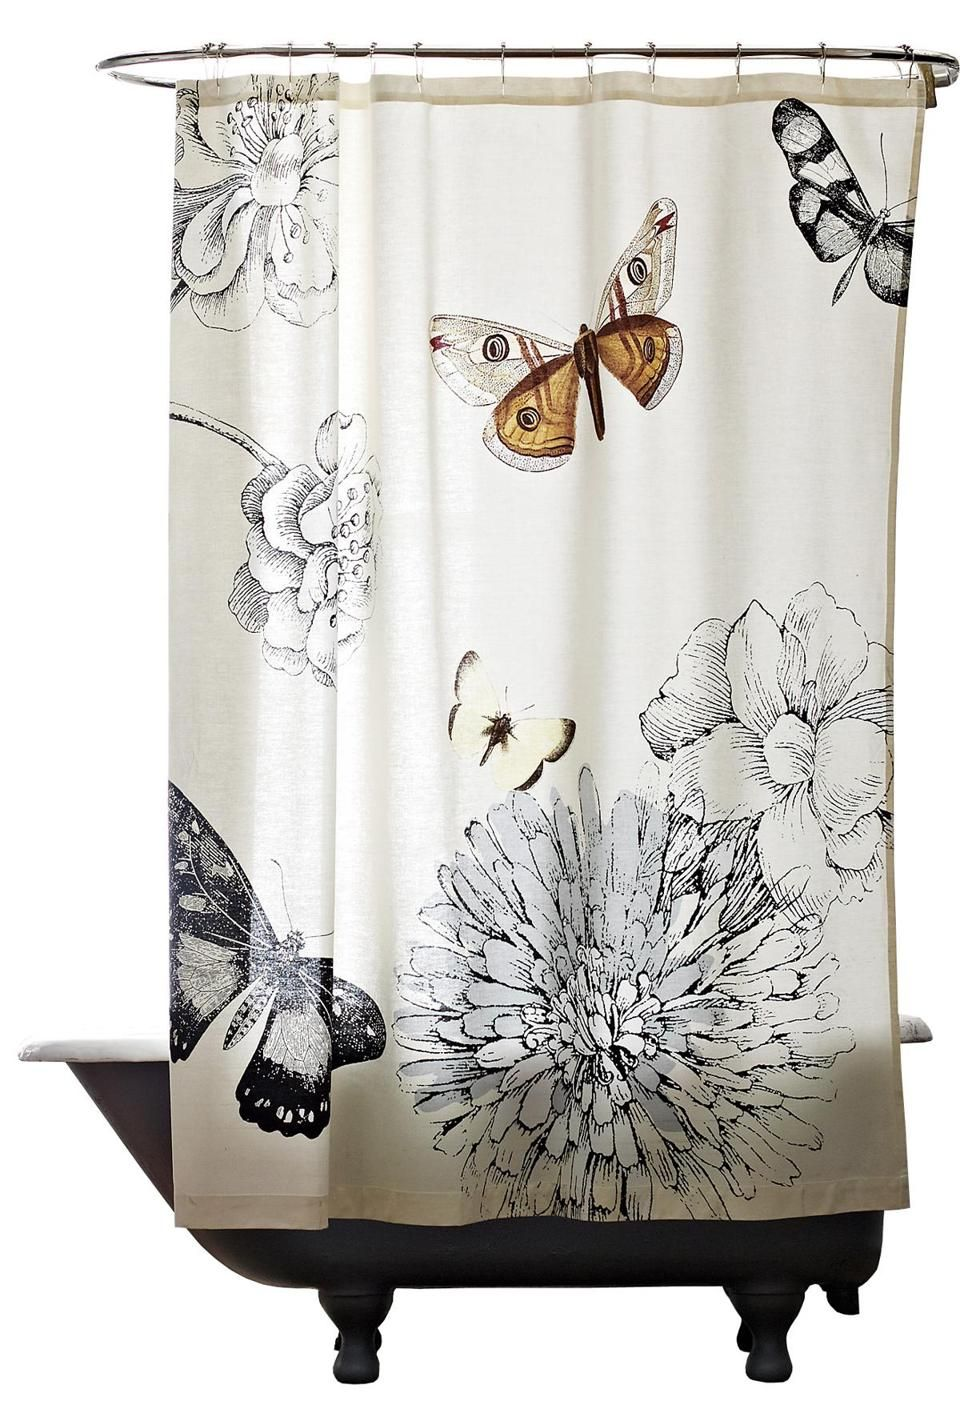 Erfly Shower Curtain 49 At West Elm 160 Brookline Avenue Boston 617 450 9500 And Wayside Commons 6 Road Burlington 781 221 5626